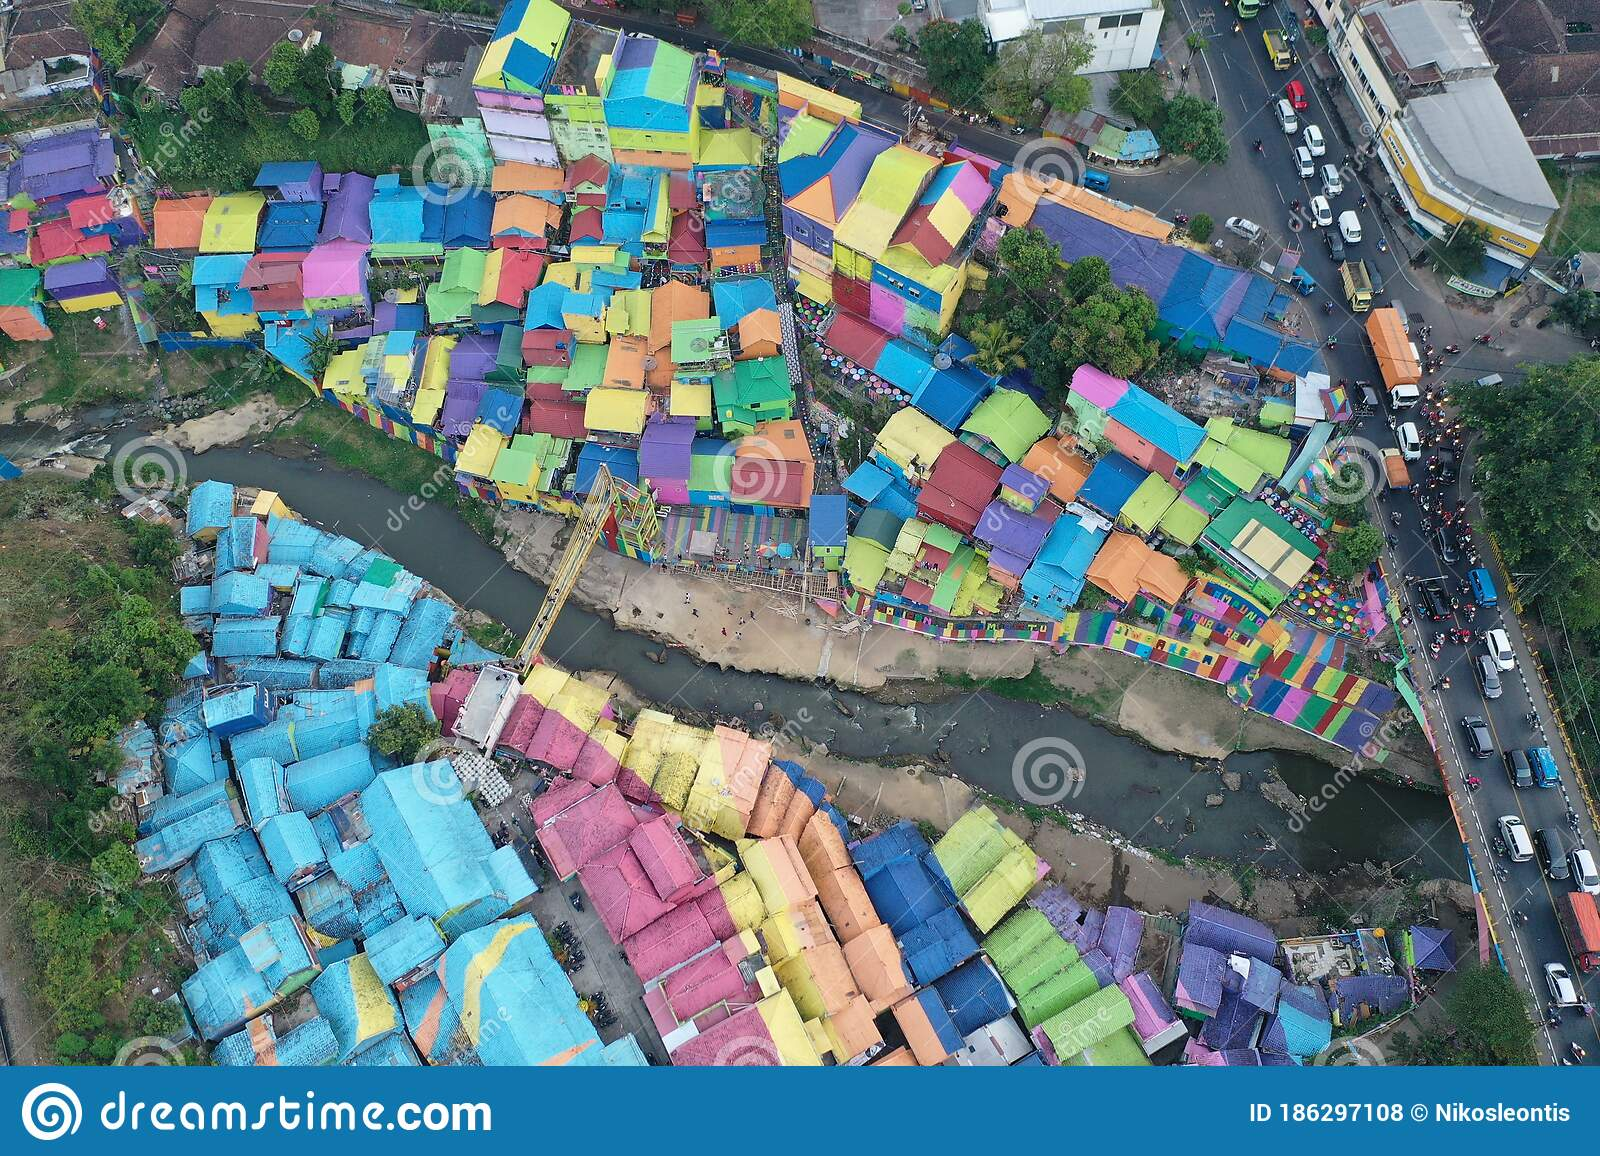 Colorful City Malang Indonesia Stock Photo Image Of East Asia 186297108